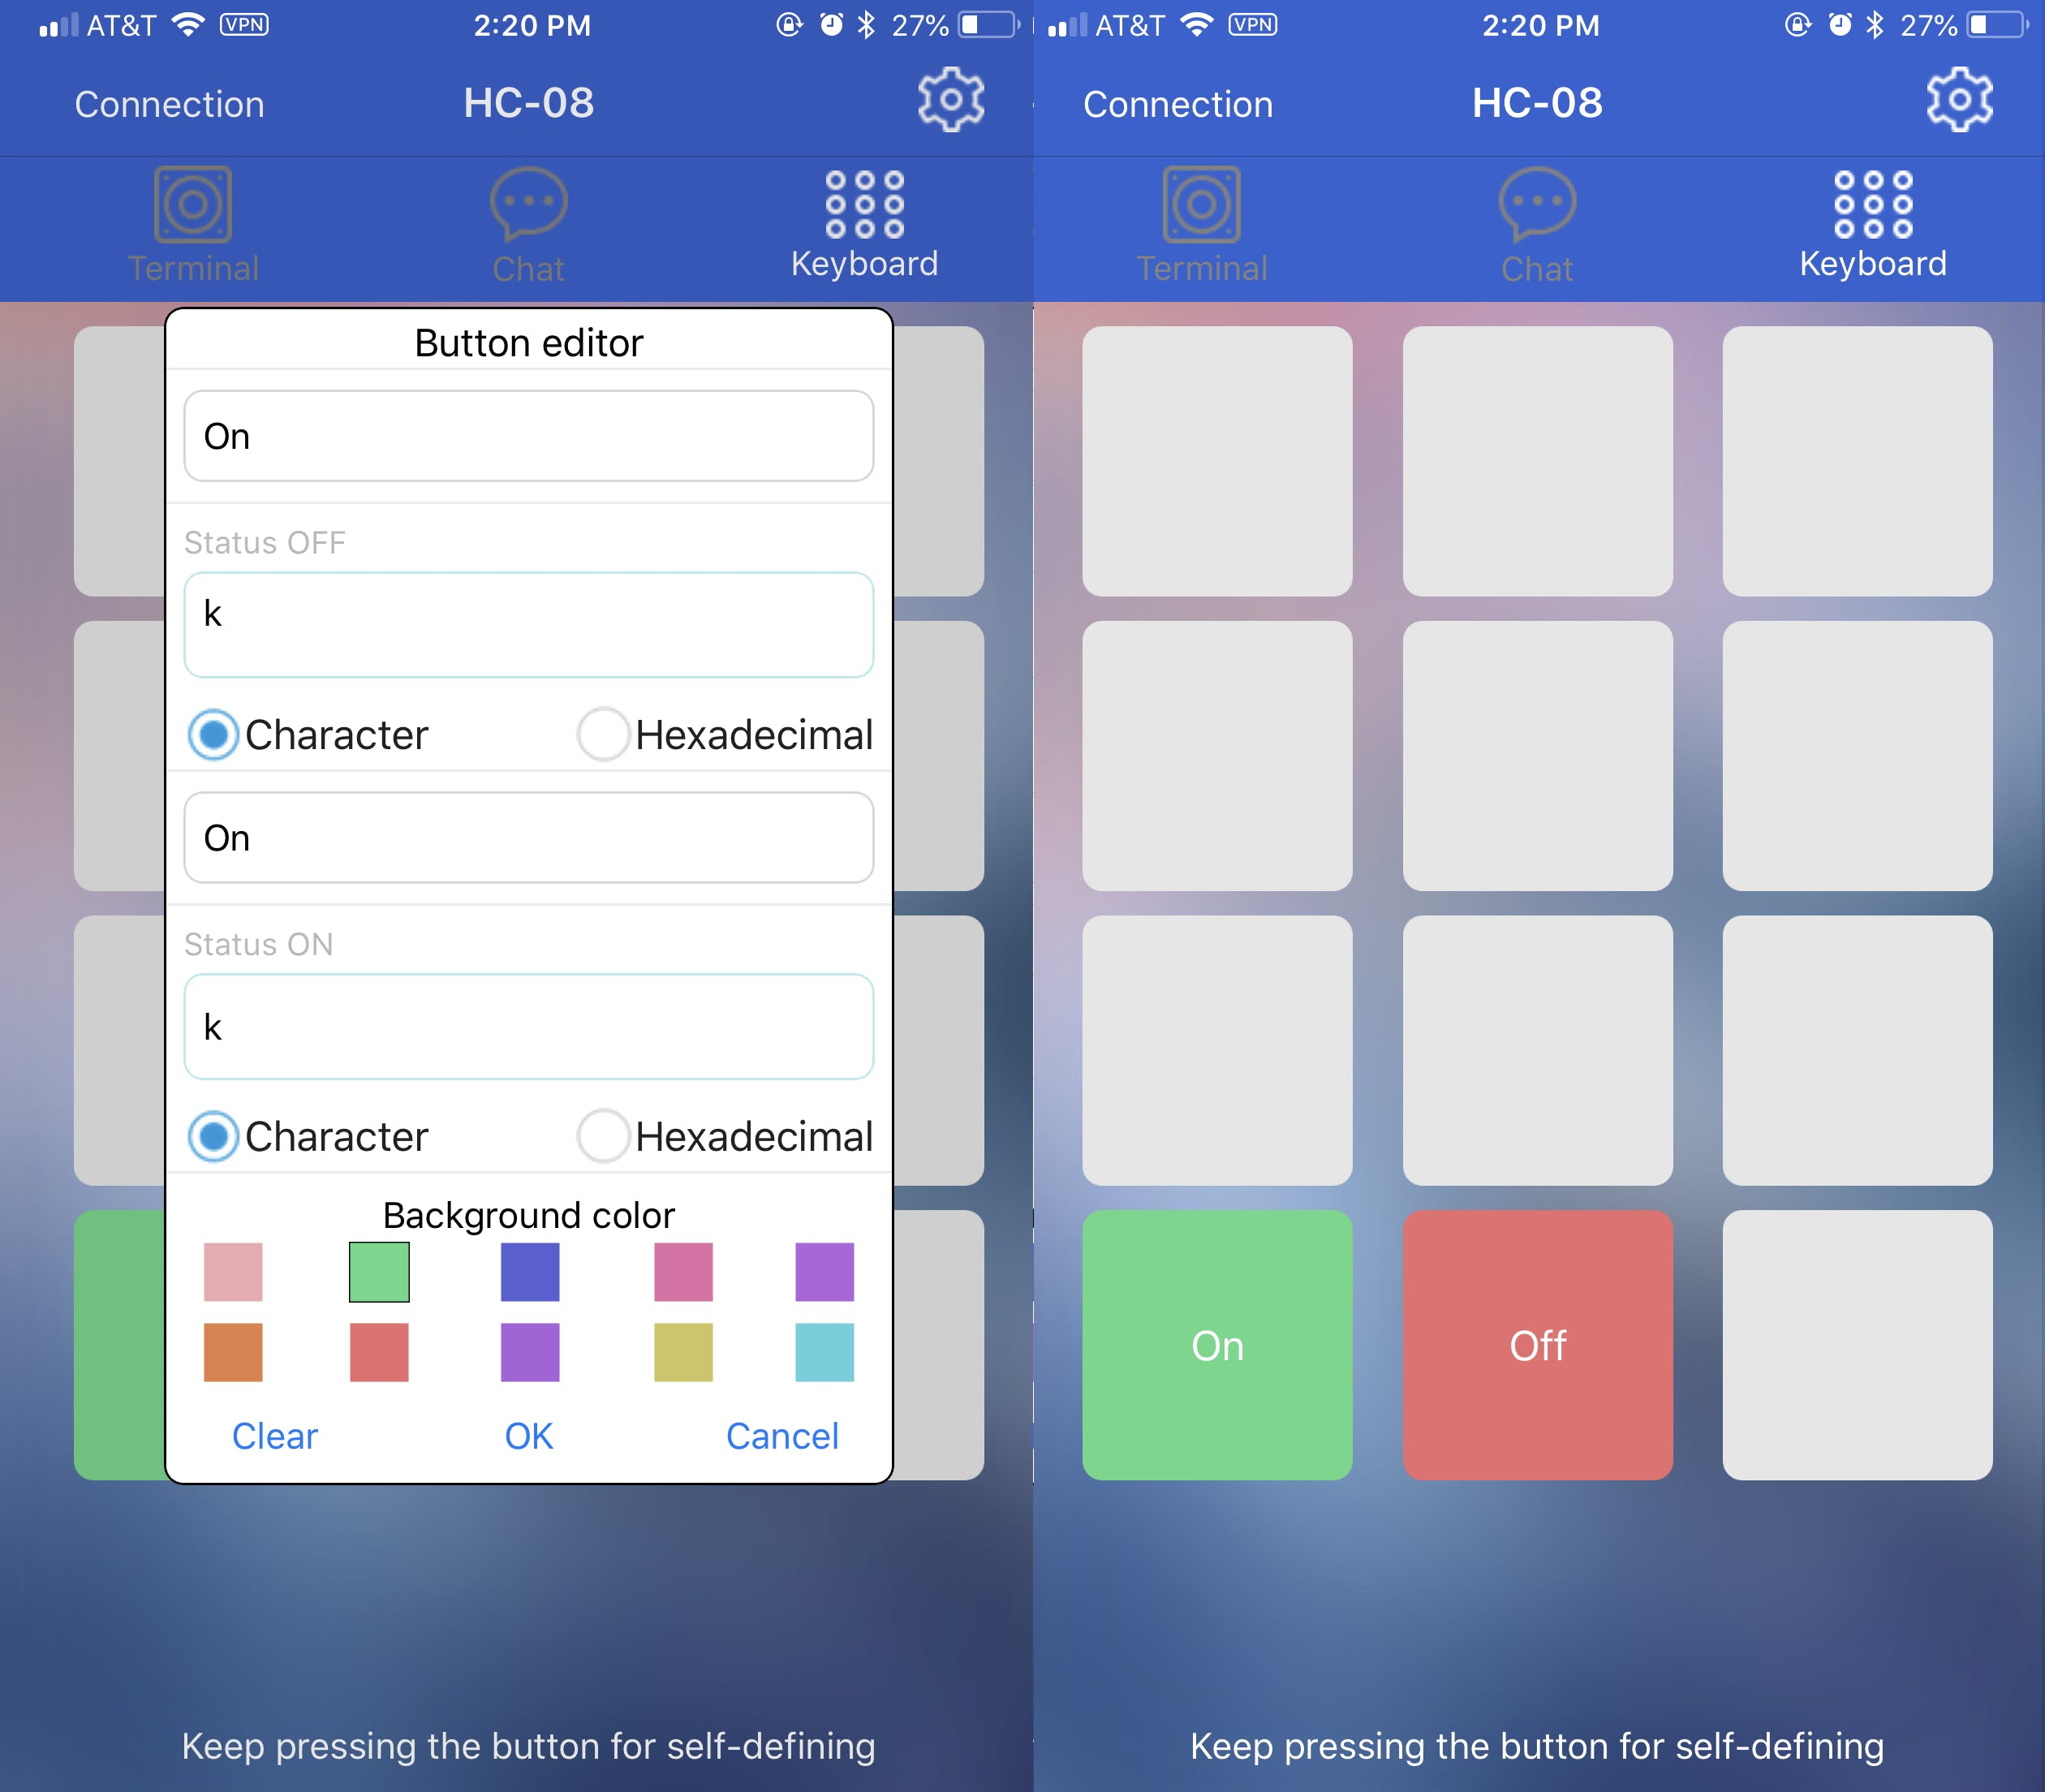 How to define the panels in the app.